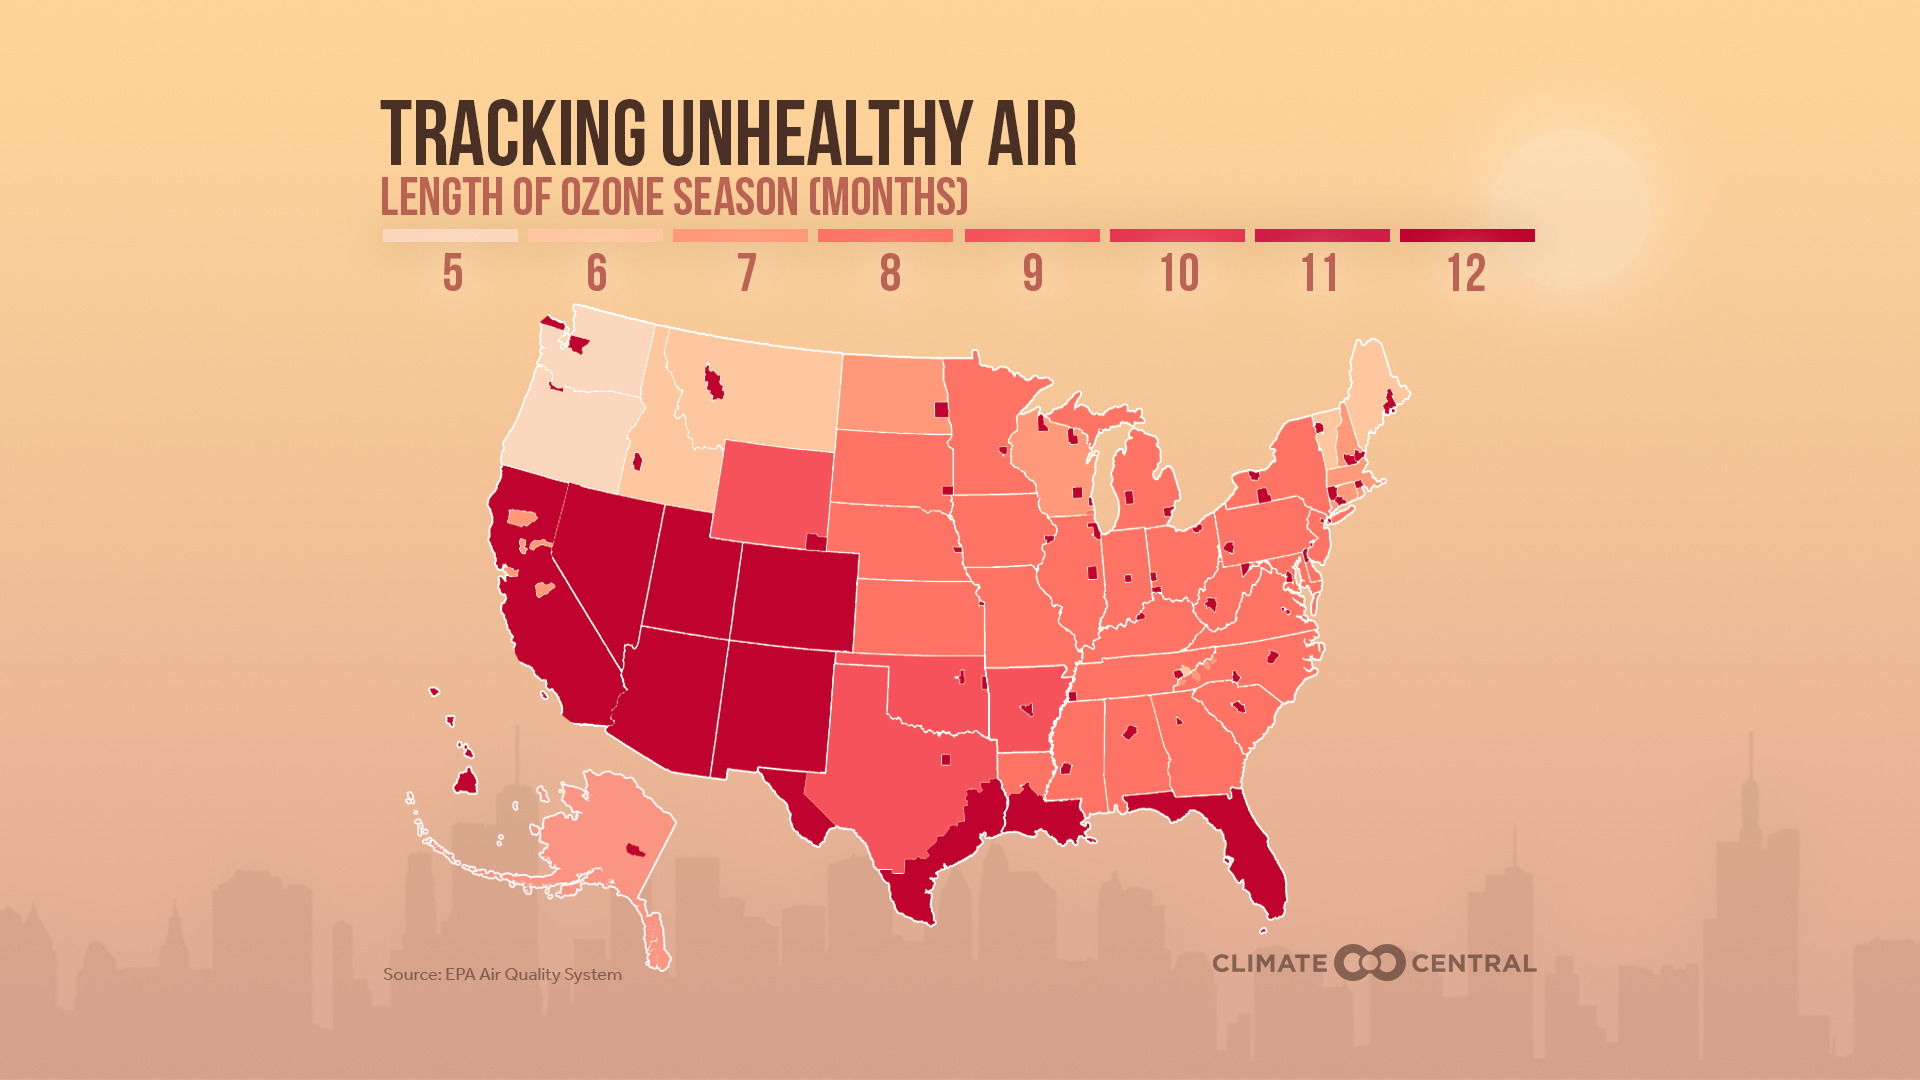 Ozone Season Lengths Across the Country